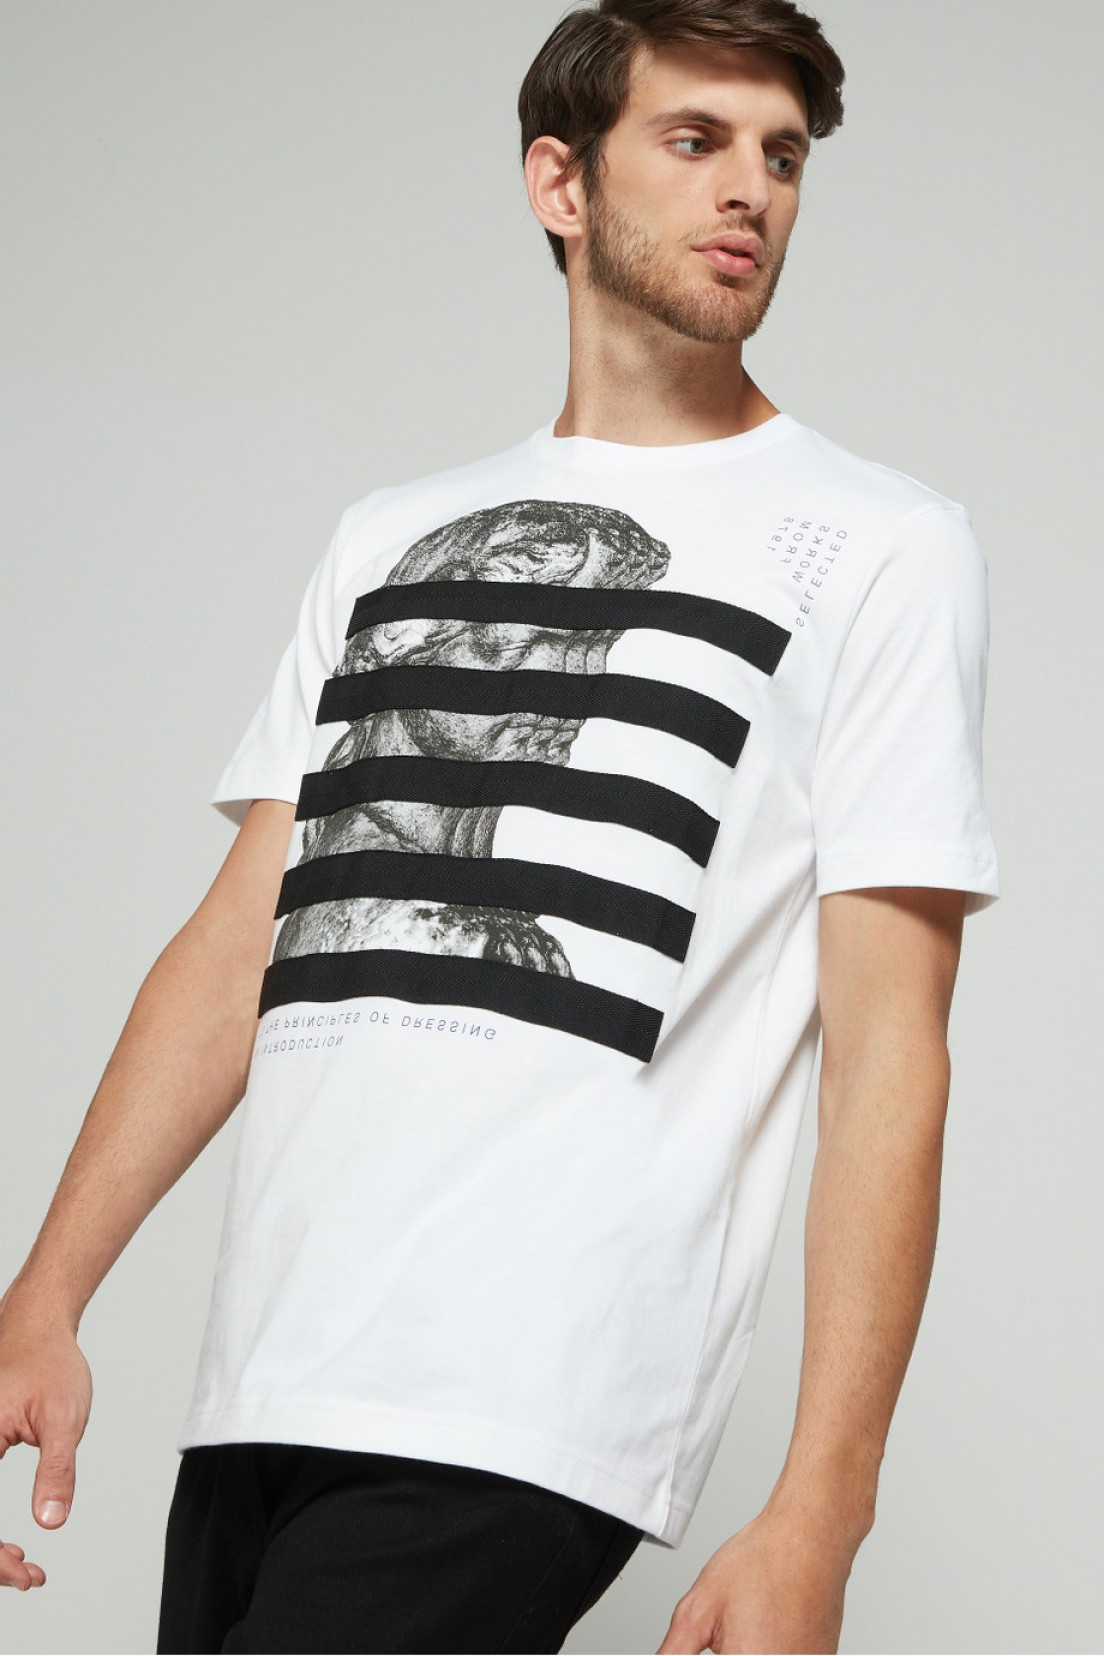 Diesel T-Shirt Vector: Shop T Just Yo Jersey Tee For Mens